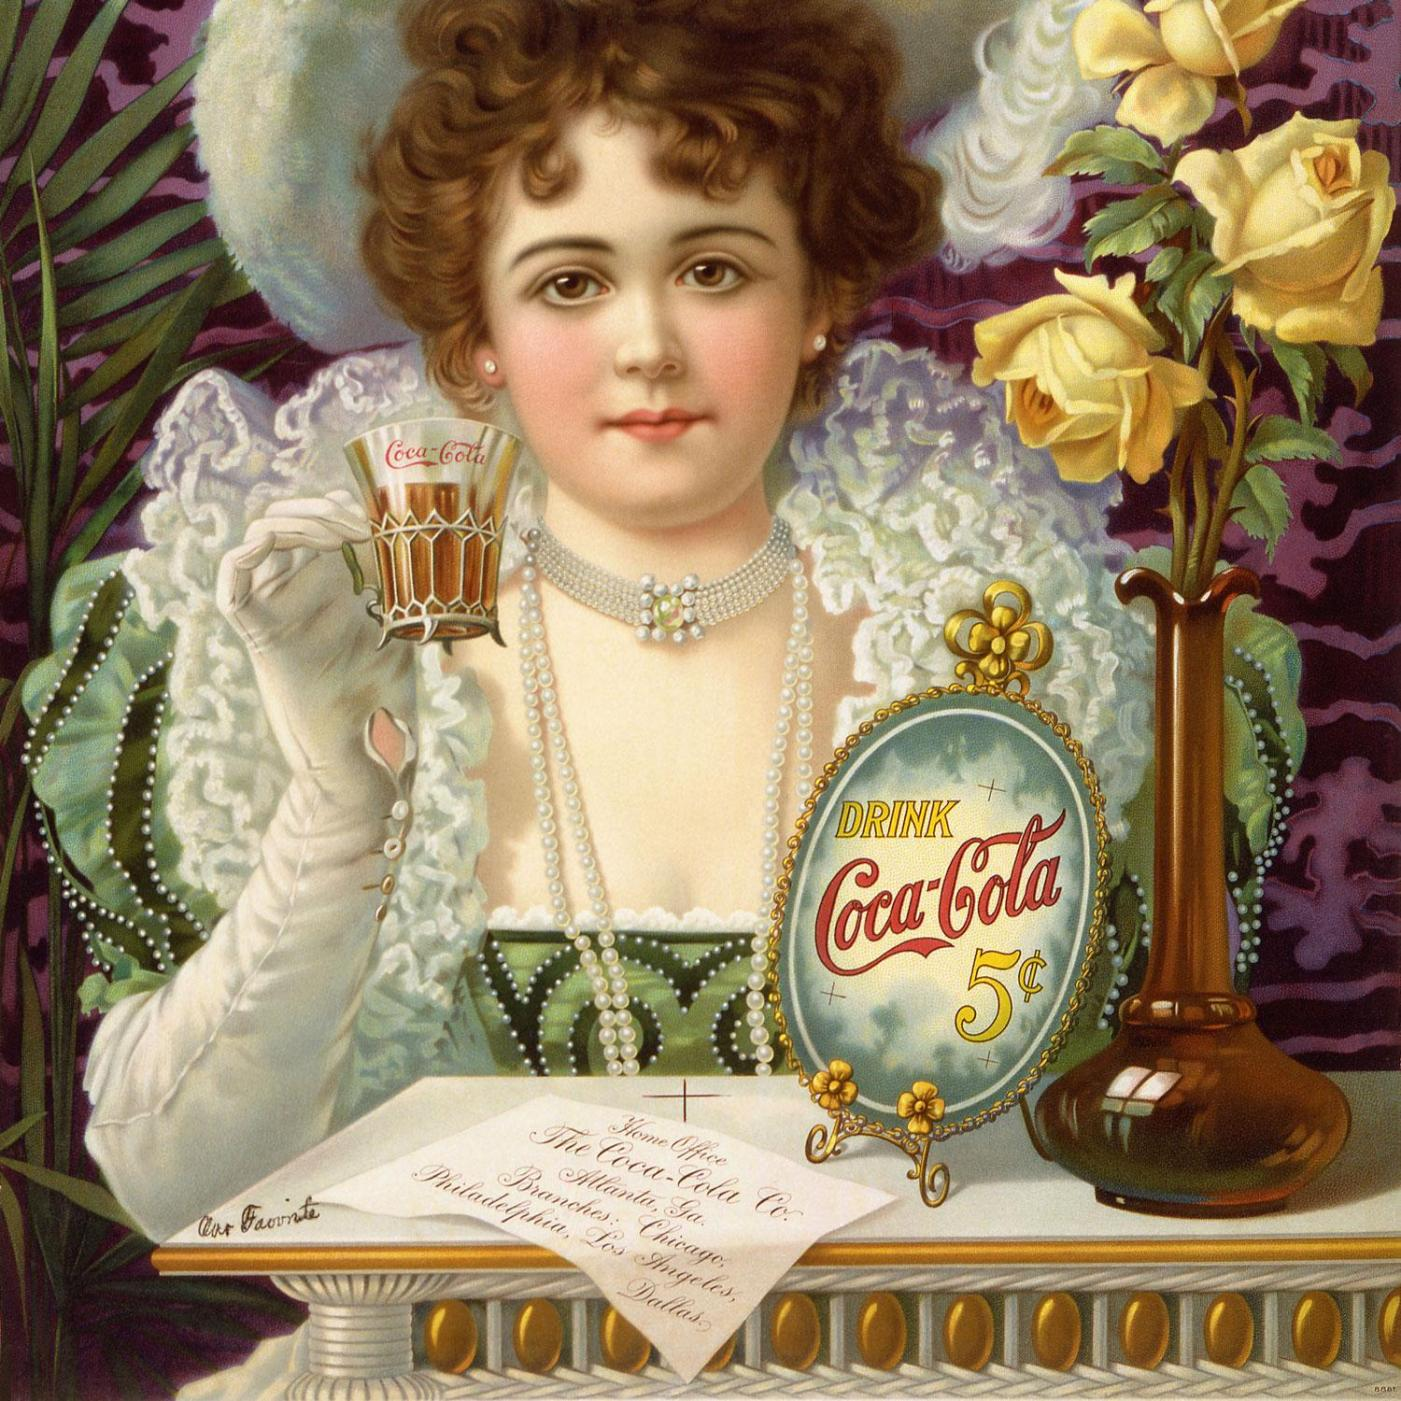 Cocacola-5cents-1900_edit1.jpg